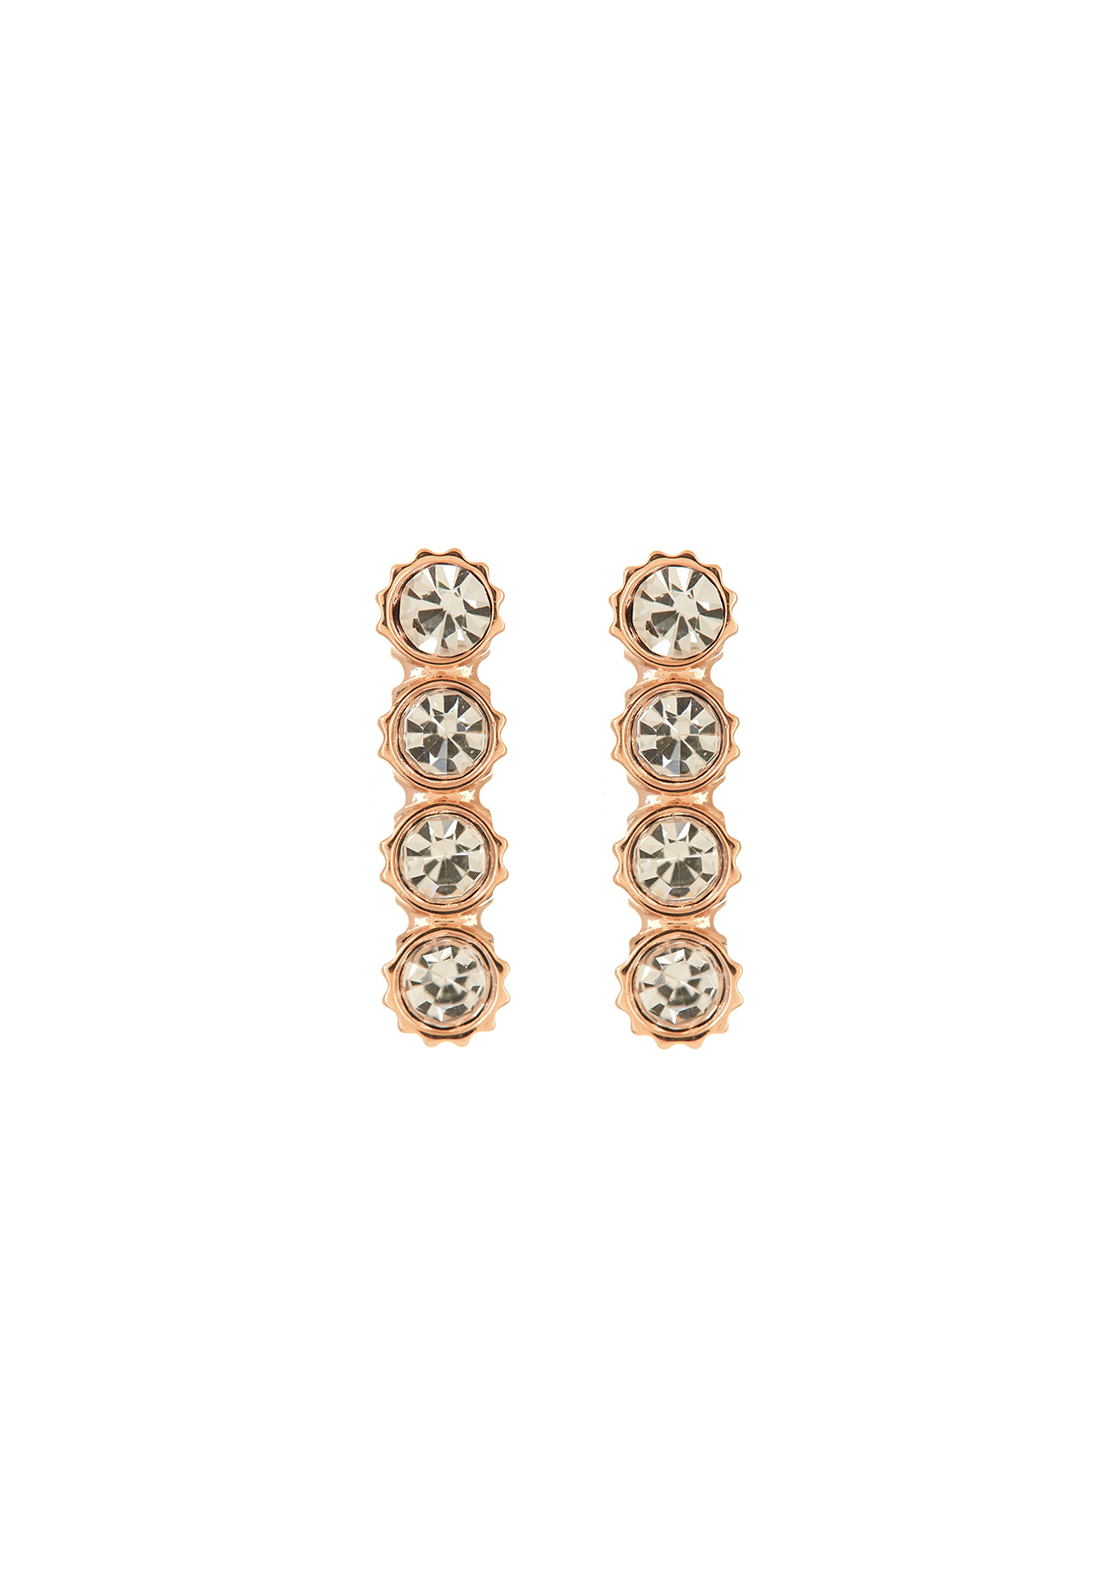 Fossil Coin Edge Earrings, Rose Gold